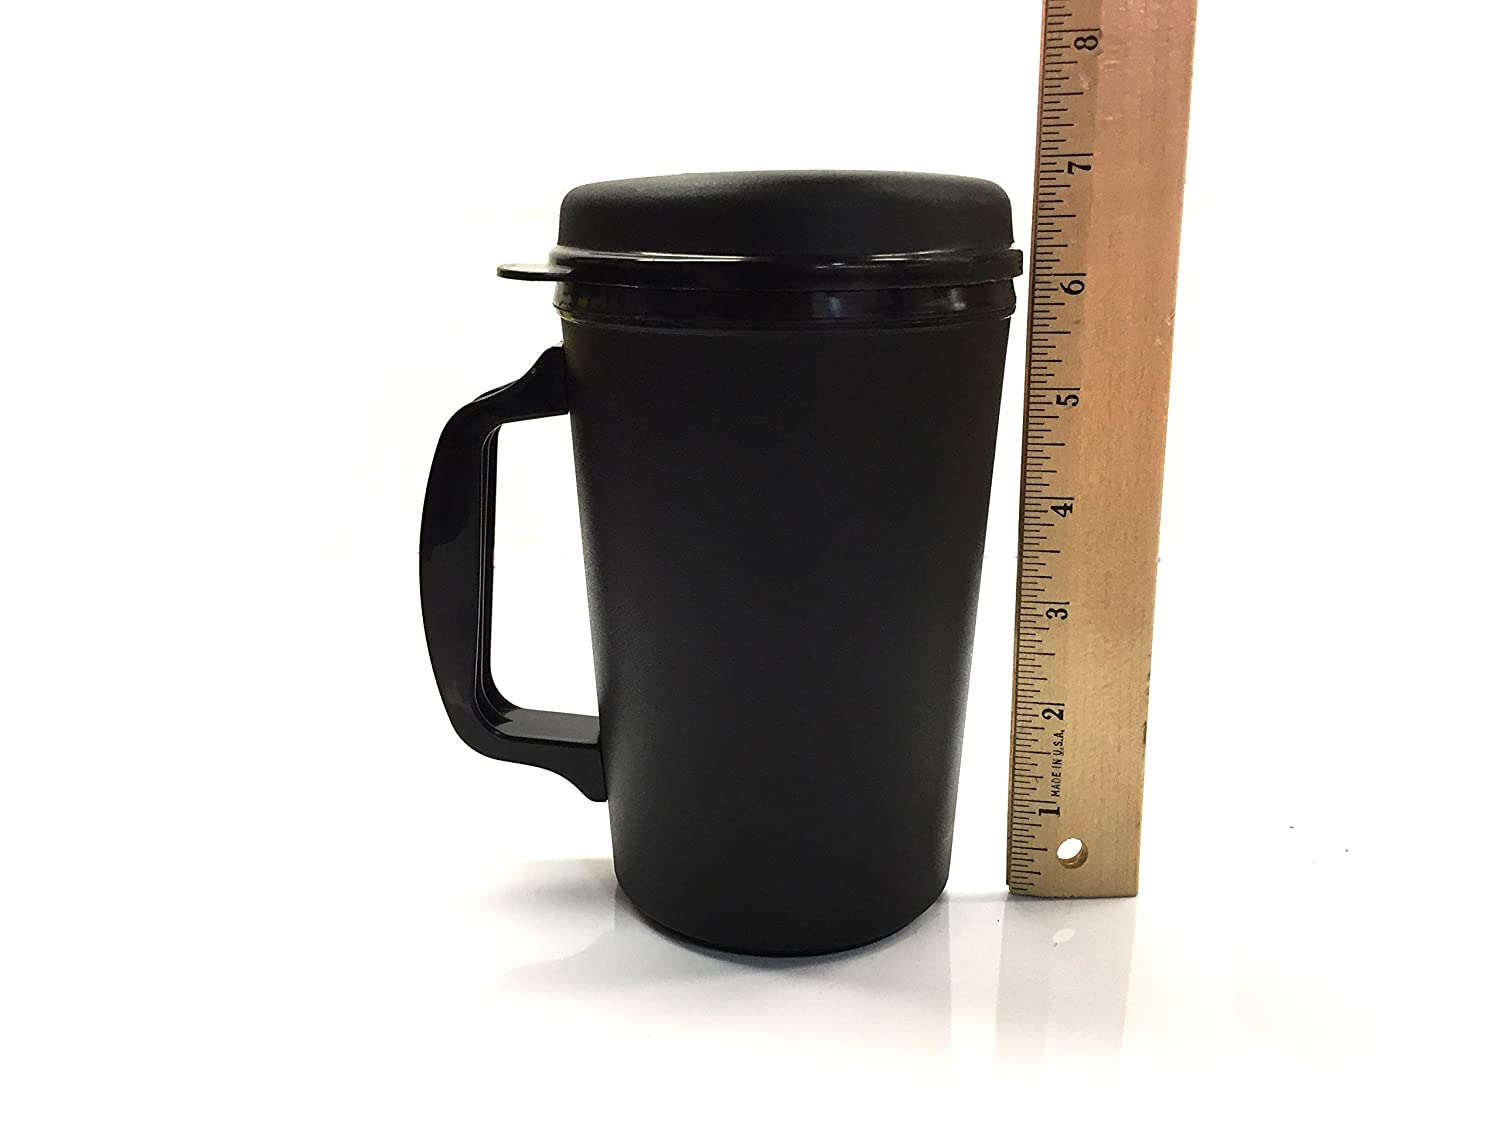 Black GAMA Electronics SYNCHKG122995 20 oz Thermoserv Foam Insulated Coffee Mug